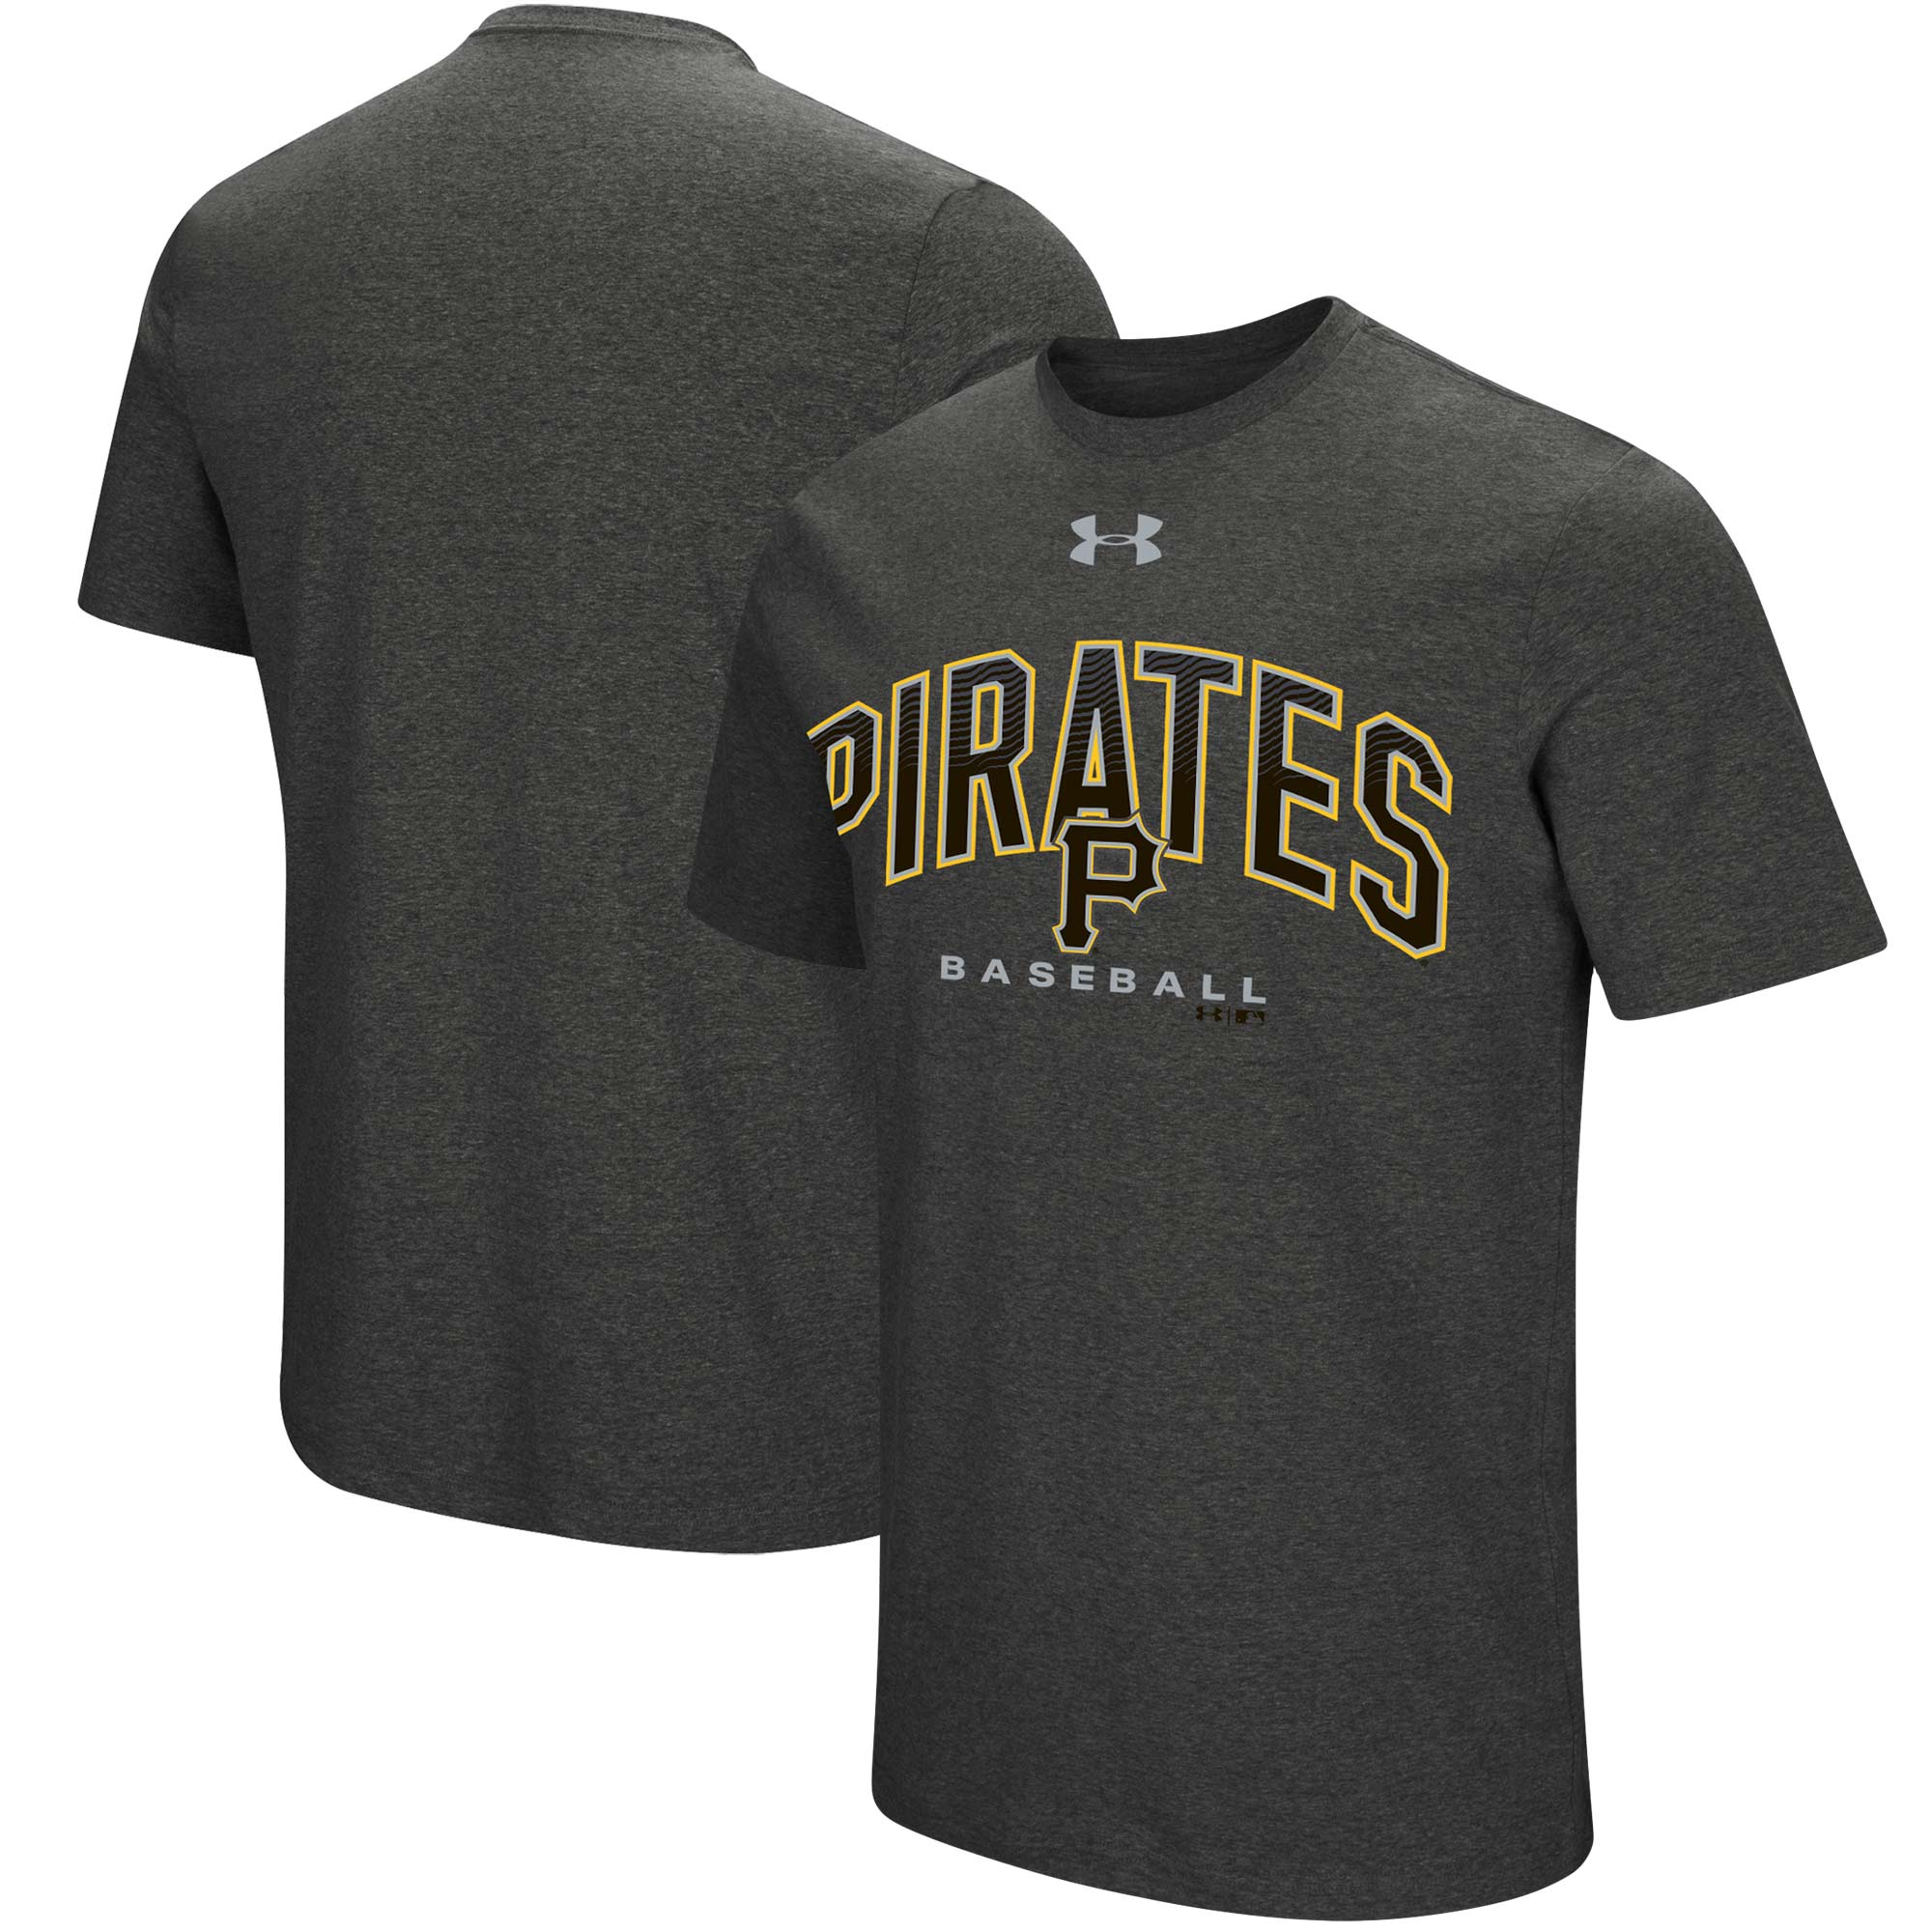 Pittsburgh Pirates Under Armour Passion Reflective Arch Performance Tri-Blend T-Shirt - Heathered Charcoal